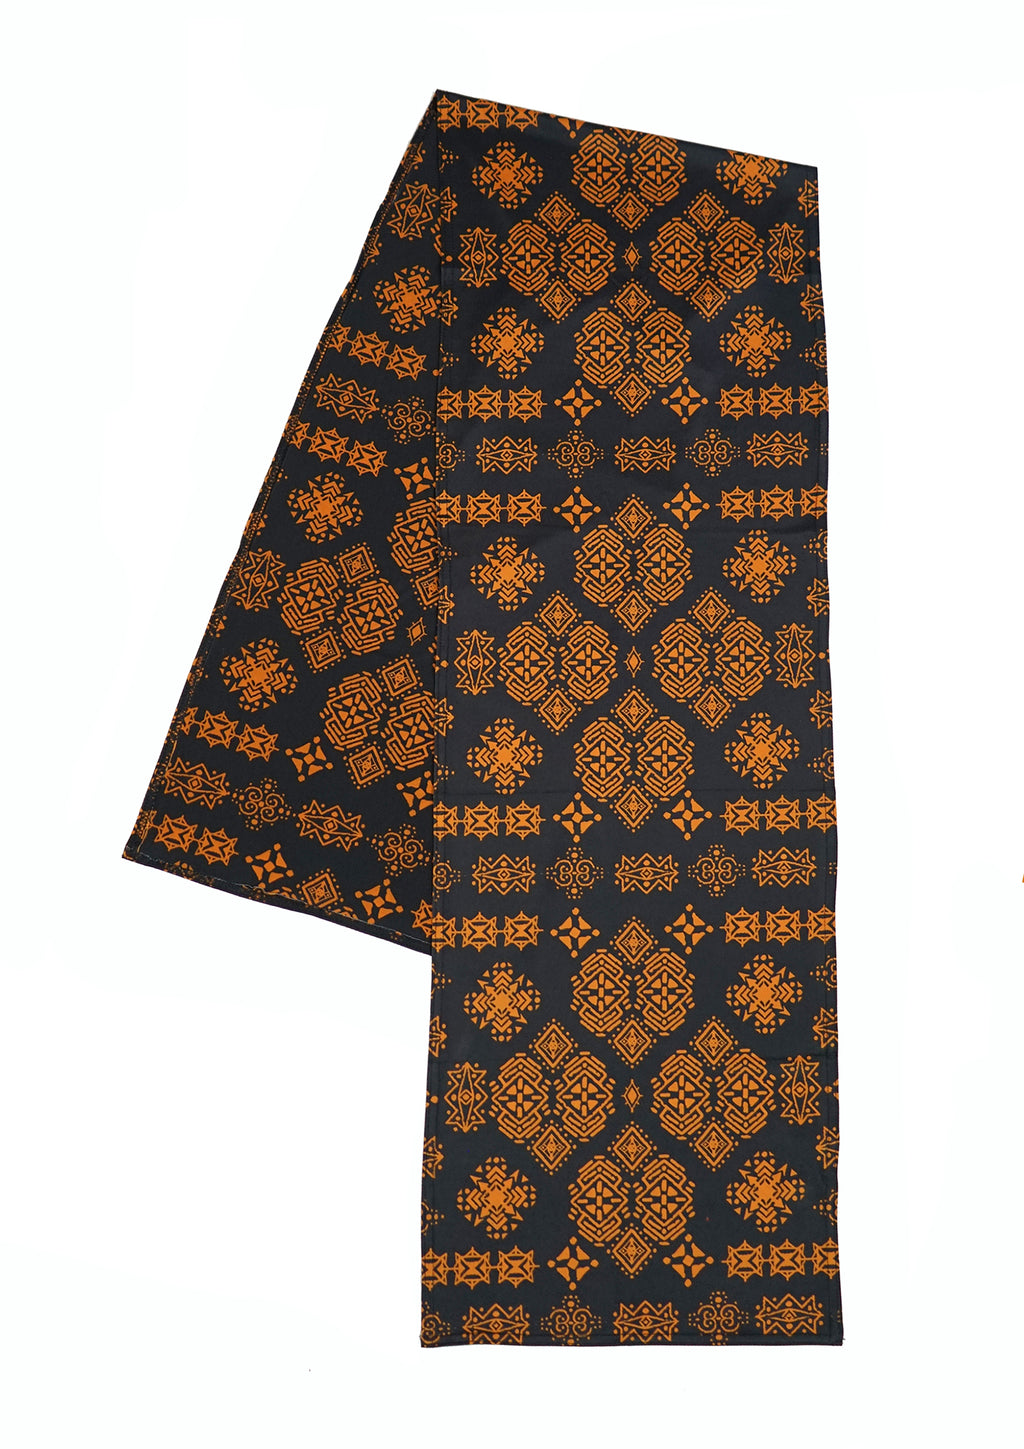 Super comfortable festival pashmina. Unique tribal patterns with vibrant gold and black colors. The perfect music festival accessory that can be used as a face mask.